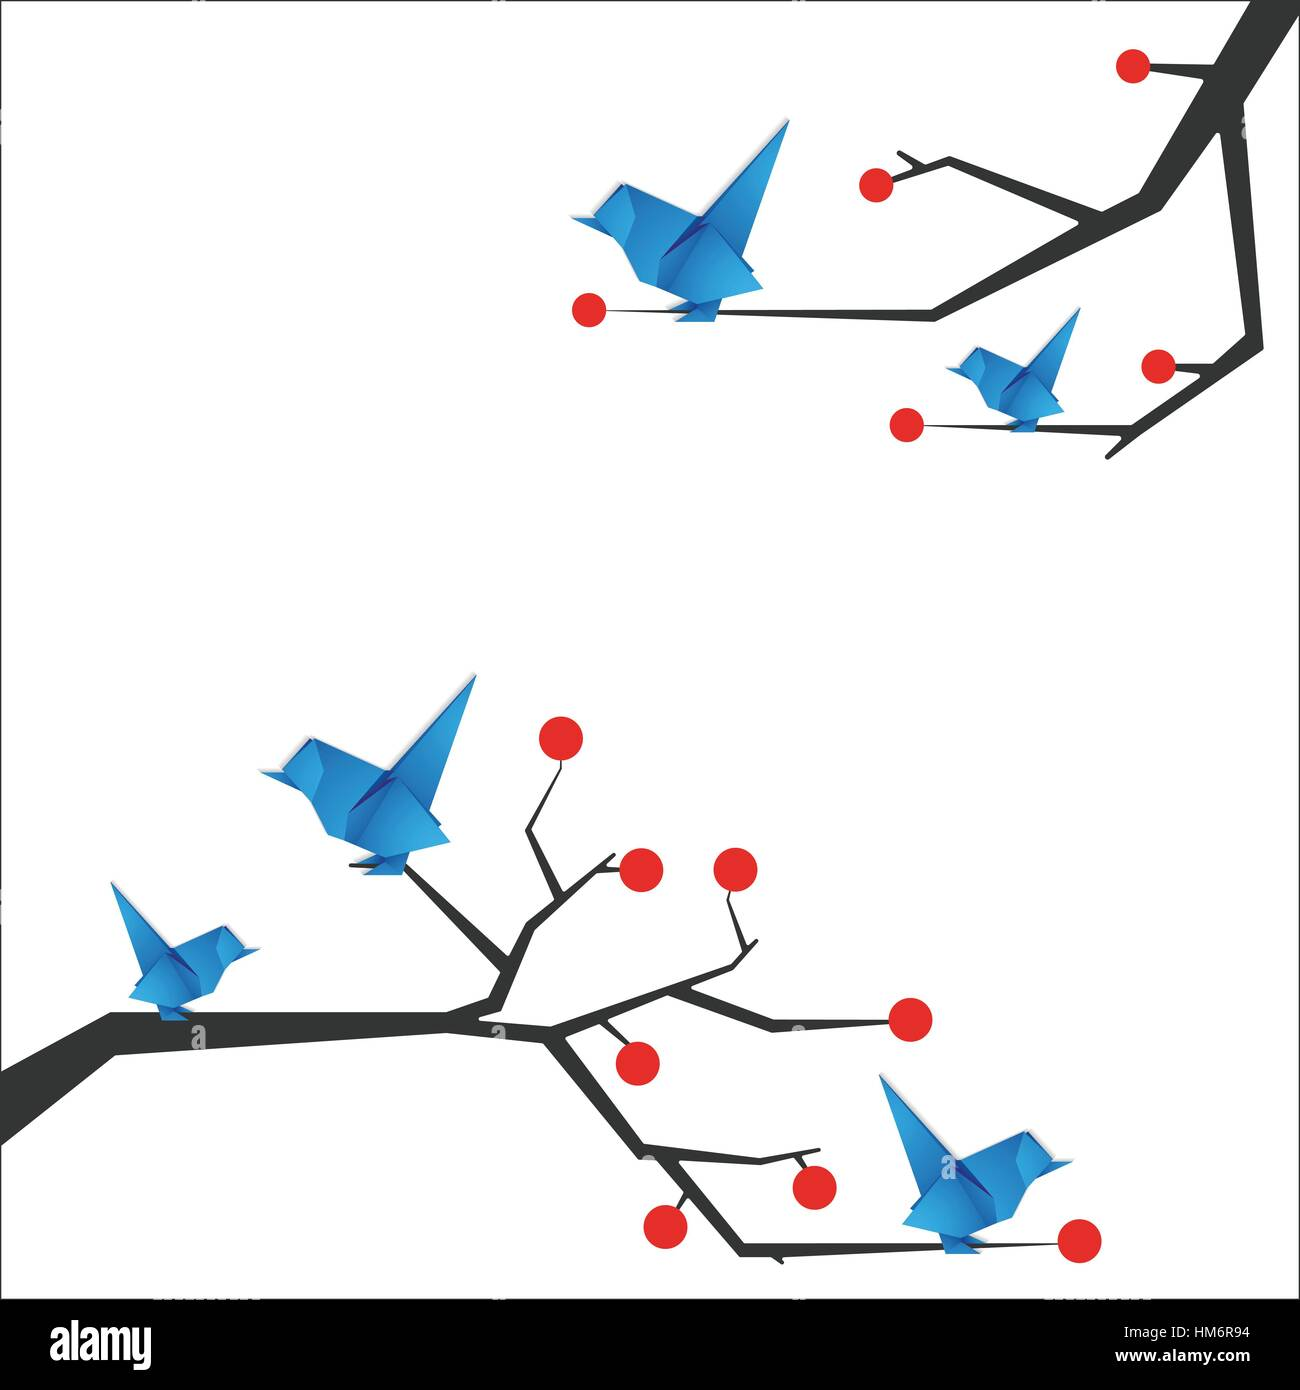 Origami bird Vector illustration Blue bird origami sitting on the branches of trees with berries Flat design and - Stock Image